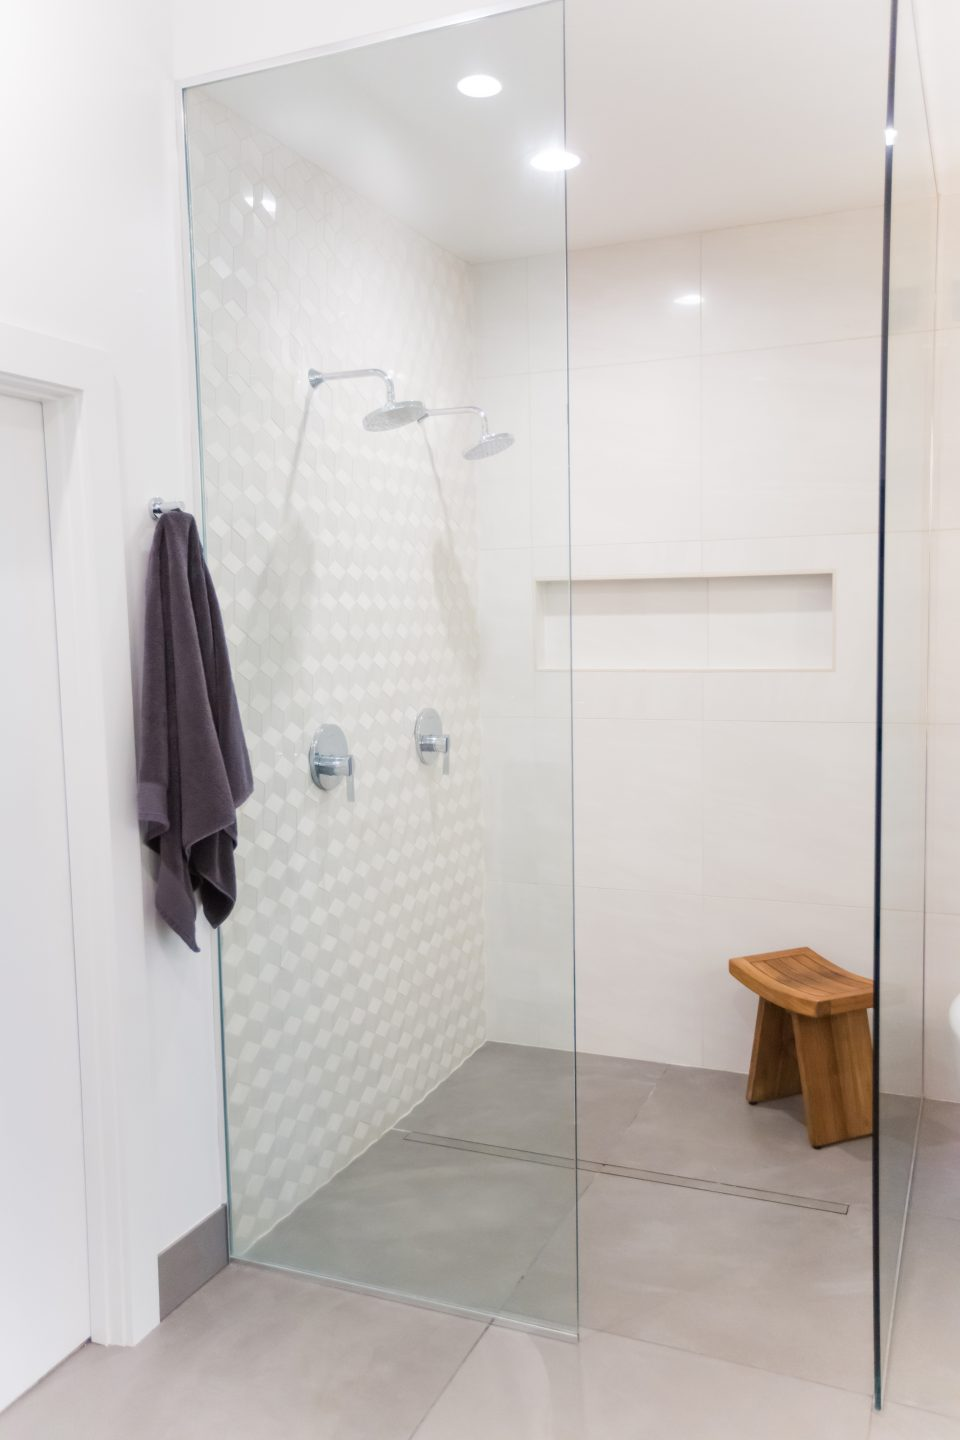 Sea Star Master Bathroom Remodel Fishers (Before & After Photos) - ACo